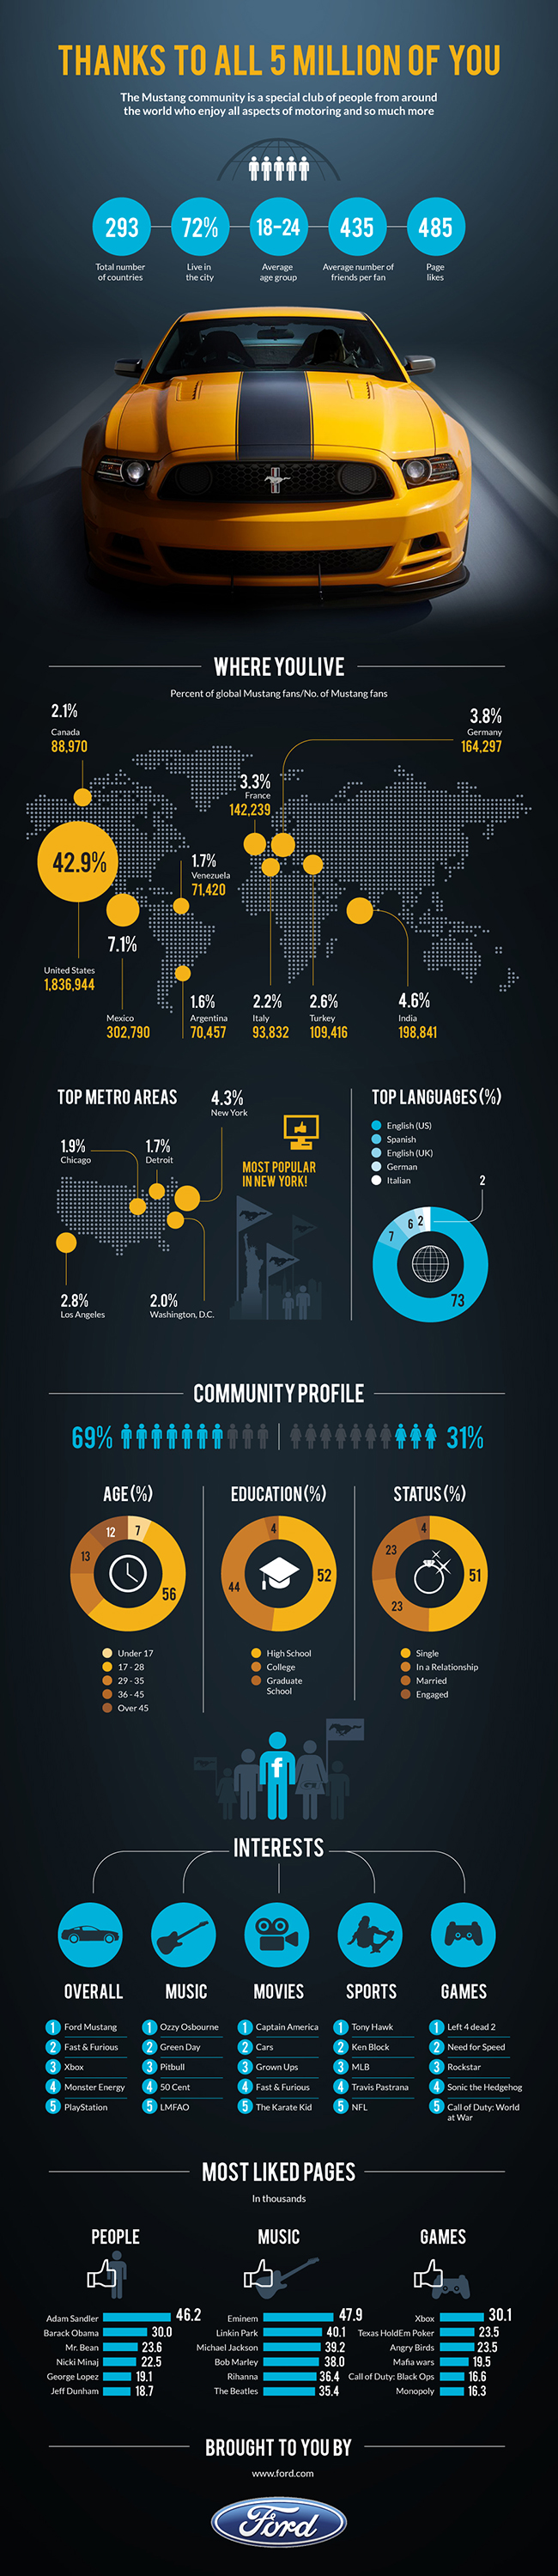 Ford Mustang 5 million Facebook fans infographic